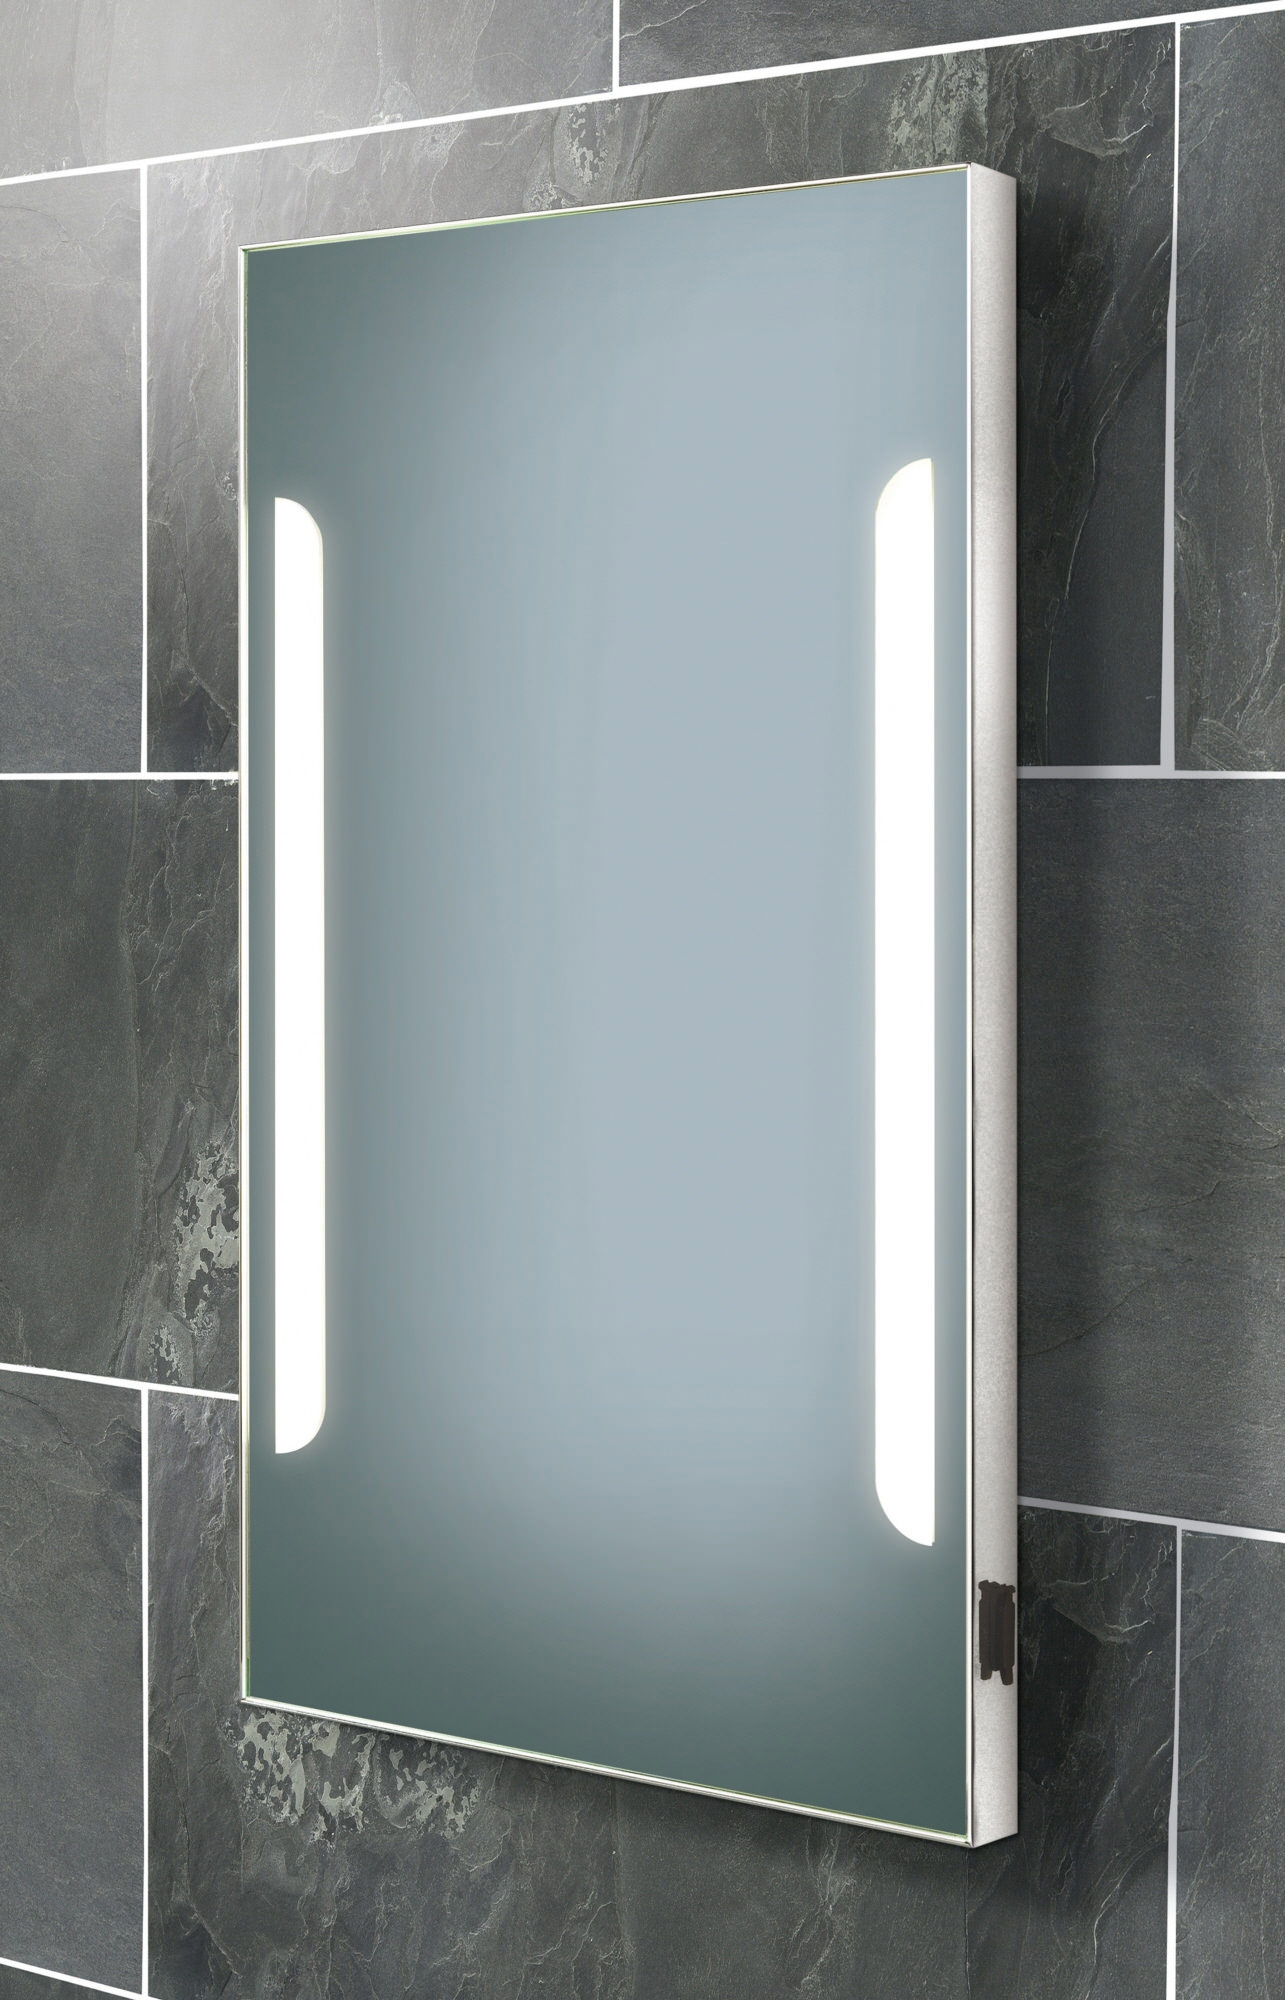 Bathroom Cabinets Mirror Illuminated Shaver Socket1285 X 2000